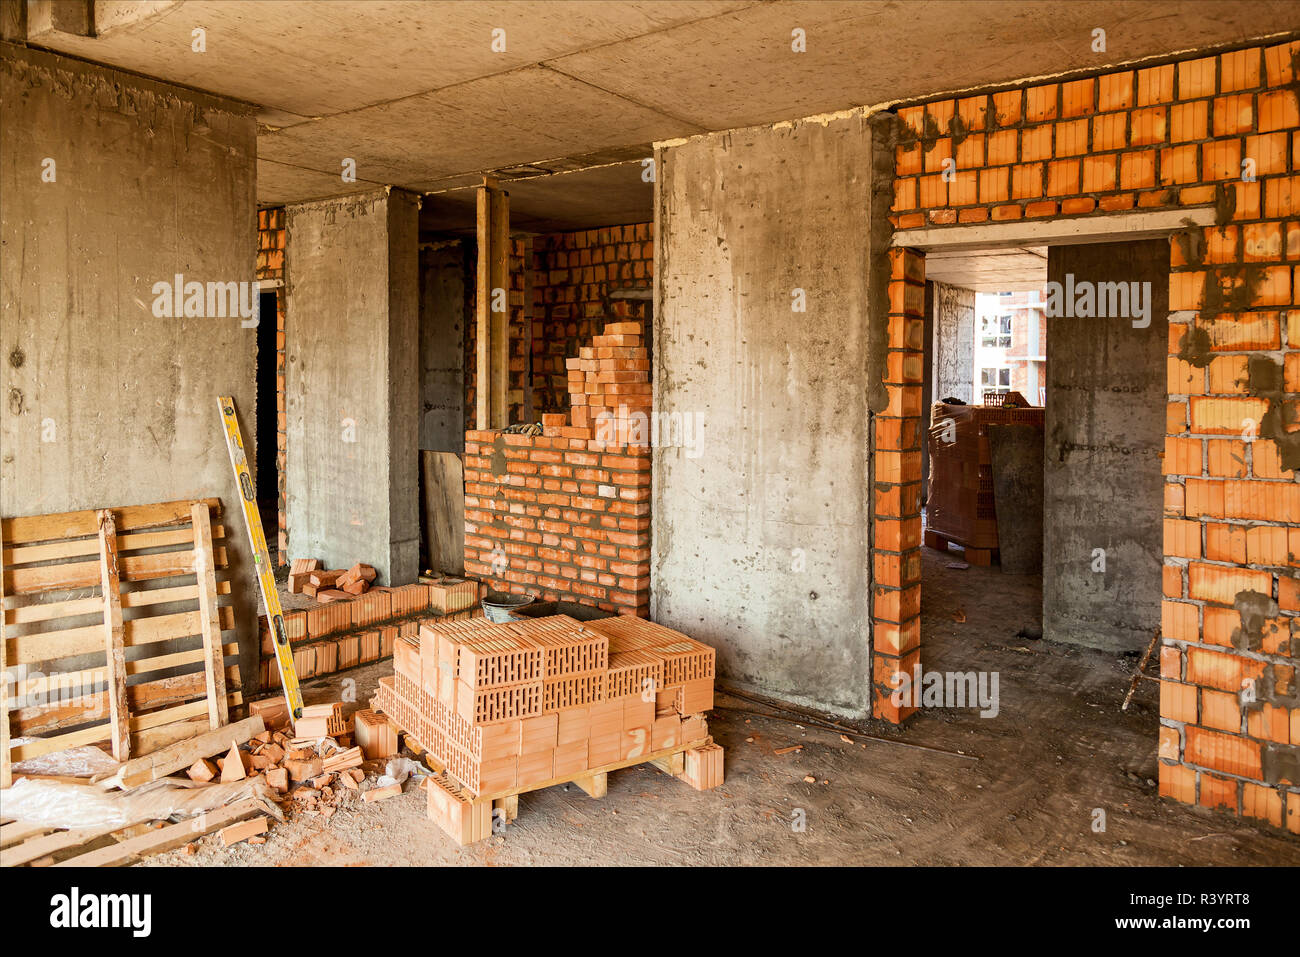 Bricklaying Of Walls In A High Rise Building Interior And Exterior Brick Walls In The Concrete Box Of The House Stock Photo Alamy